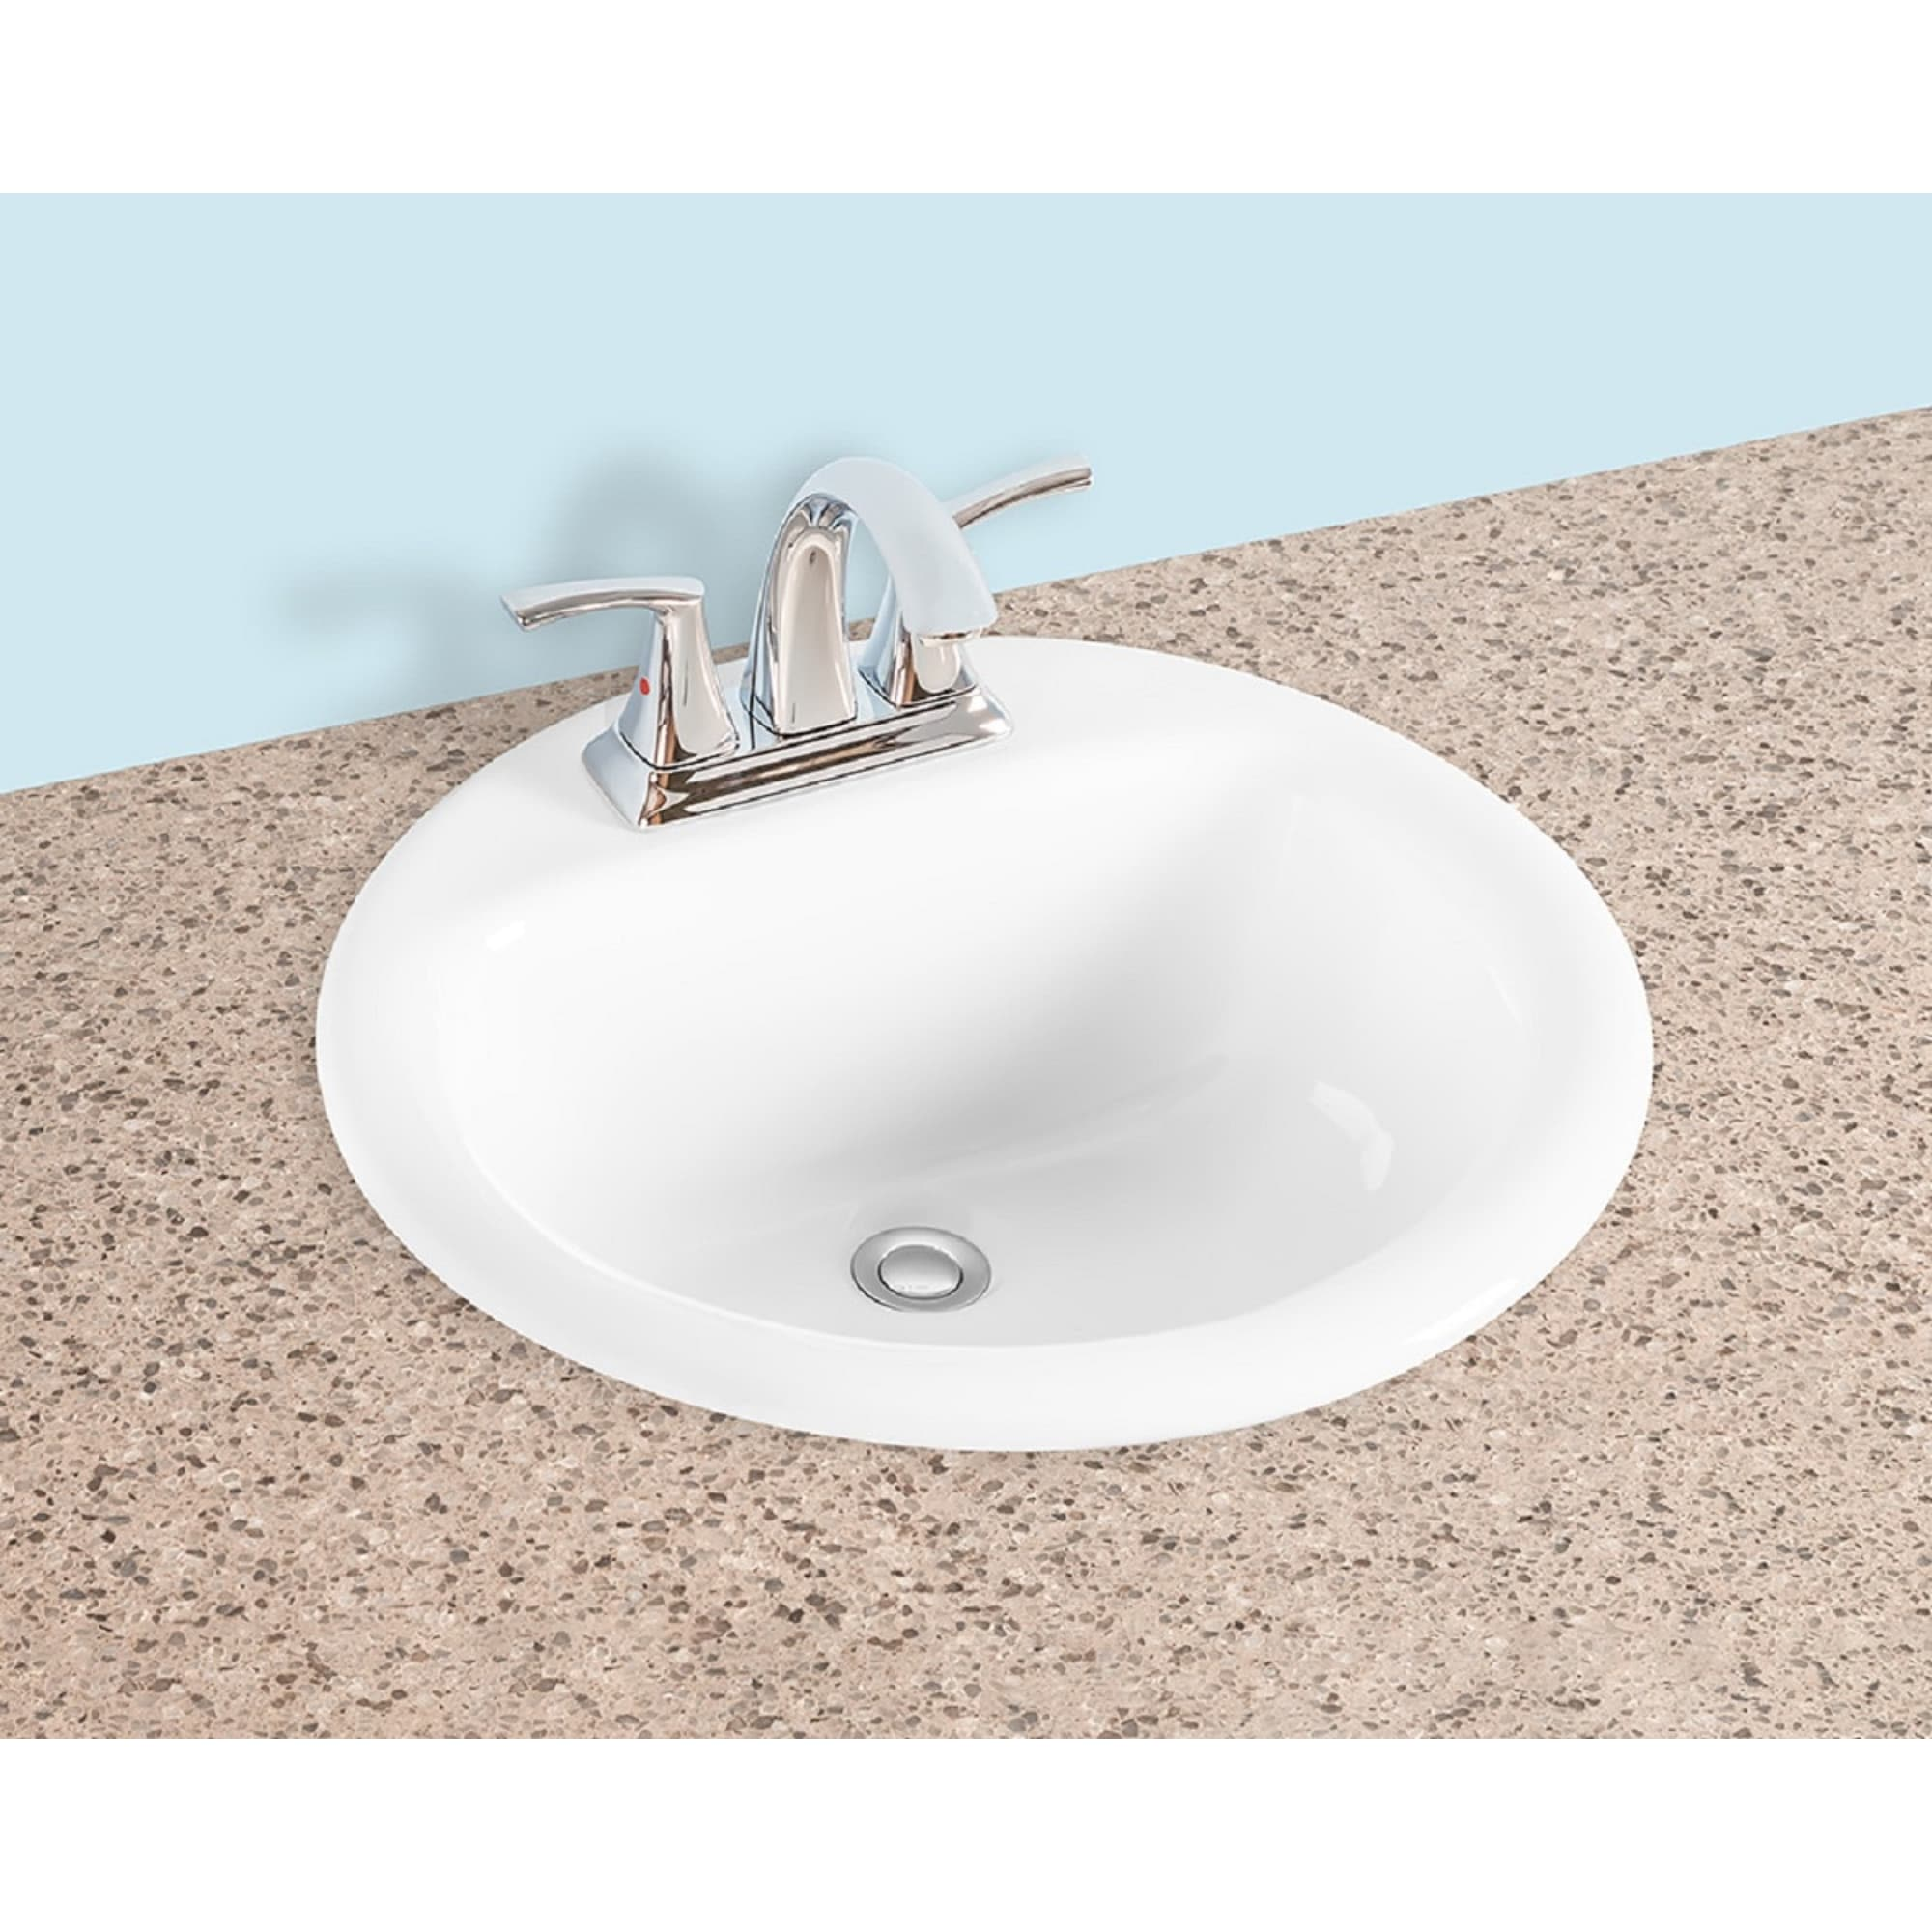 Gele 1919 19 Inch Round Drop In Bathroom Vessel Sink 3 Faucet Holes W 4 Punching White Porcelain Ceramic Counter Top Basin Overstock 31422667